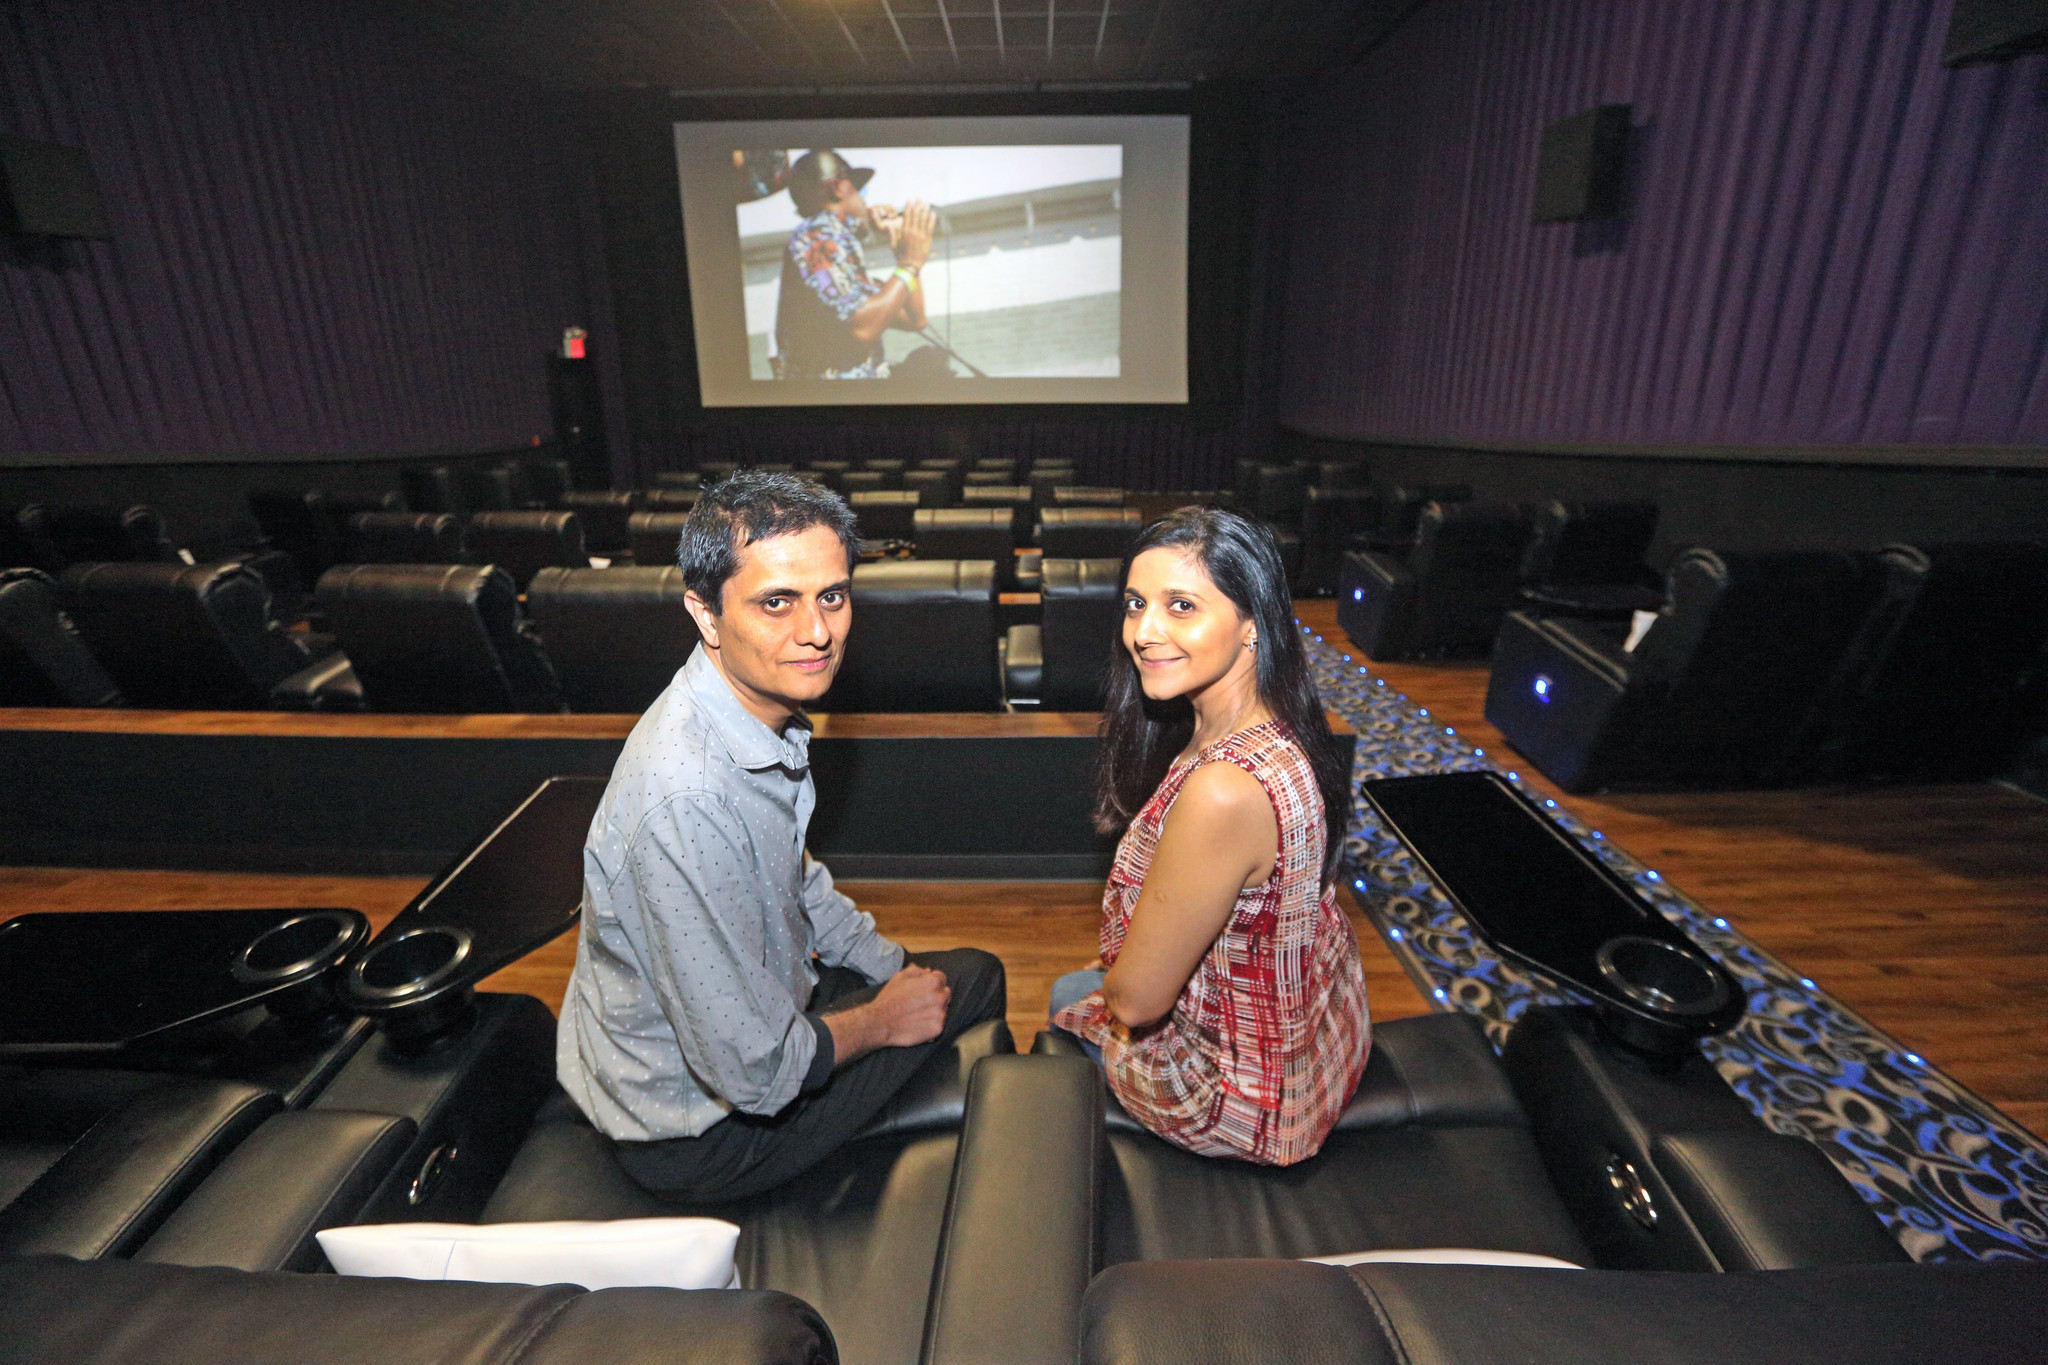 Amc And Other Theaters Upping Food Drink Game Orlando